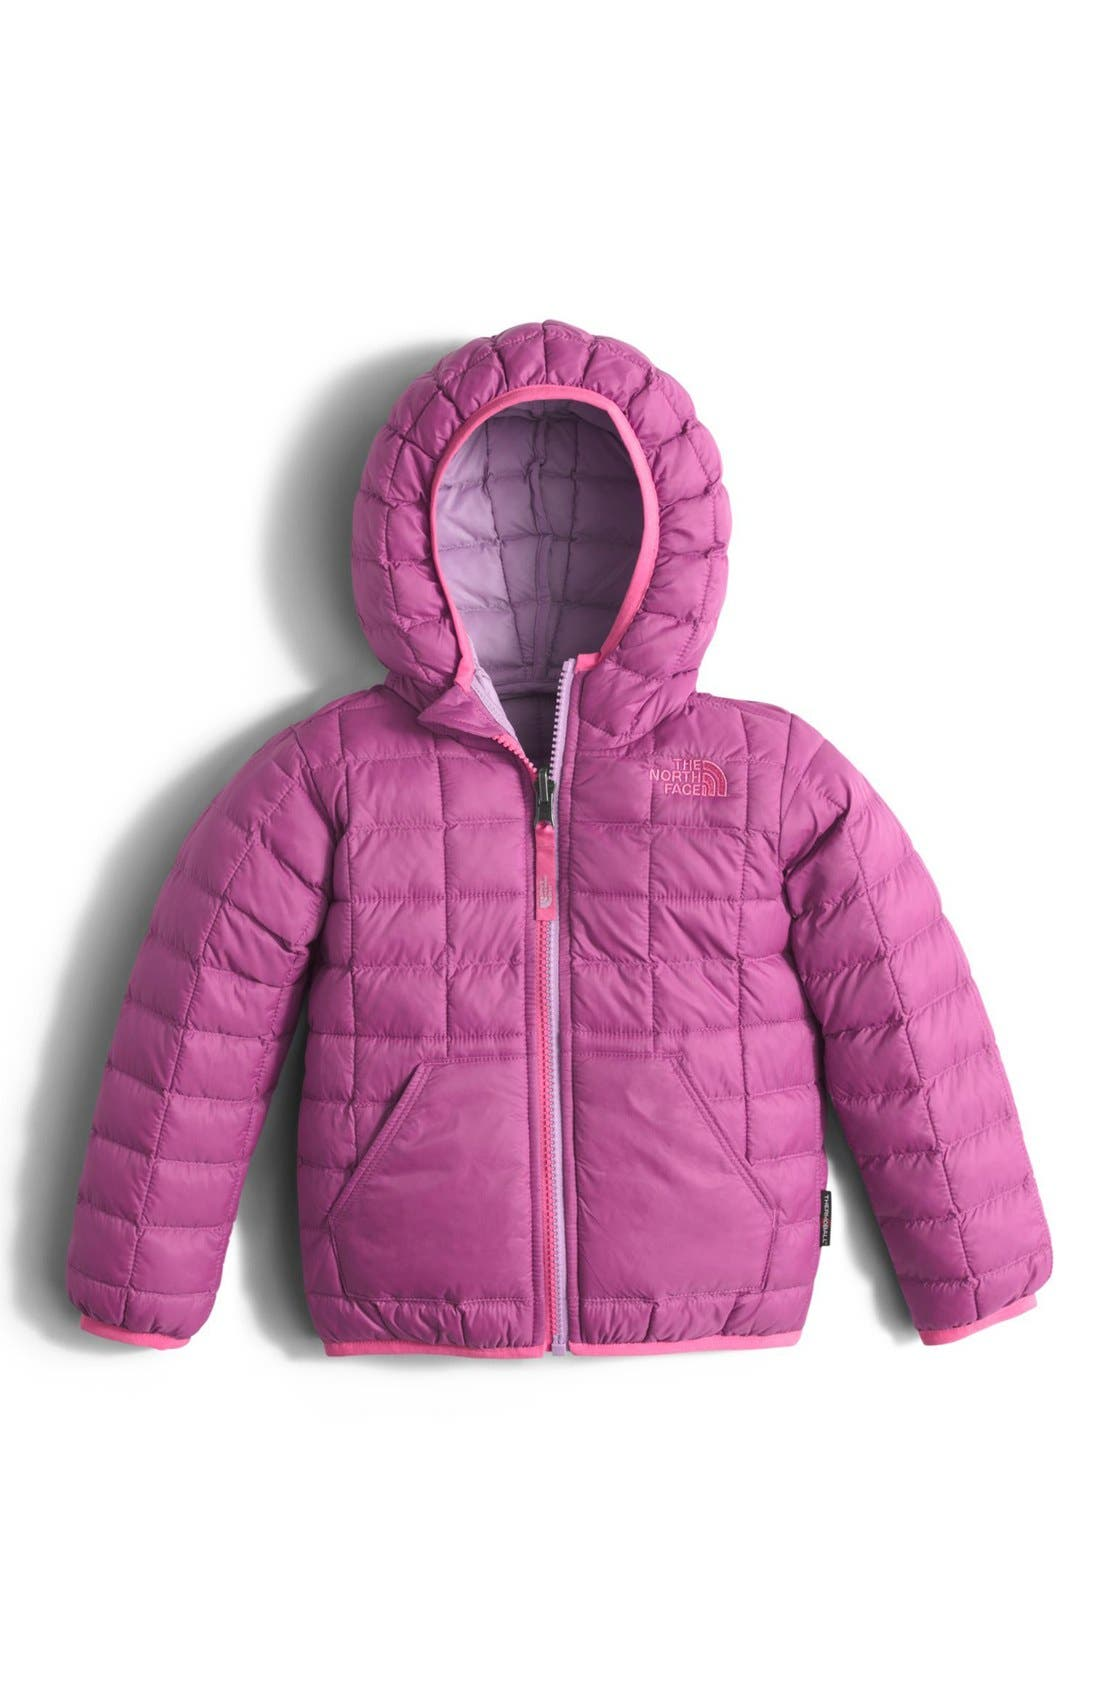 Alternate Image 1 Selected - The North Face 'ThermoBall™' PrimaLoft® Hooded Jacket (Toddler Girls & Little Girls)